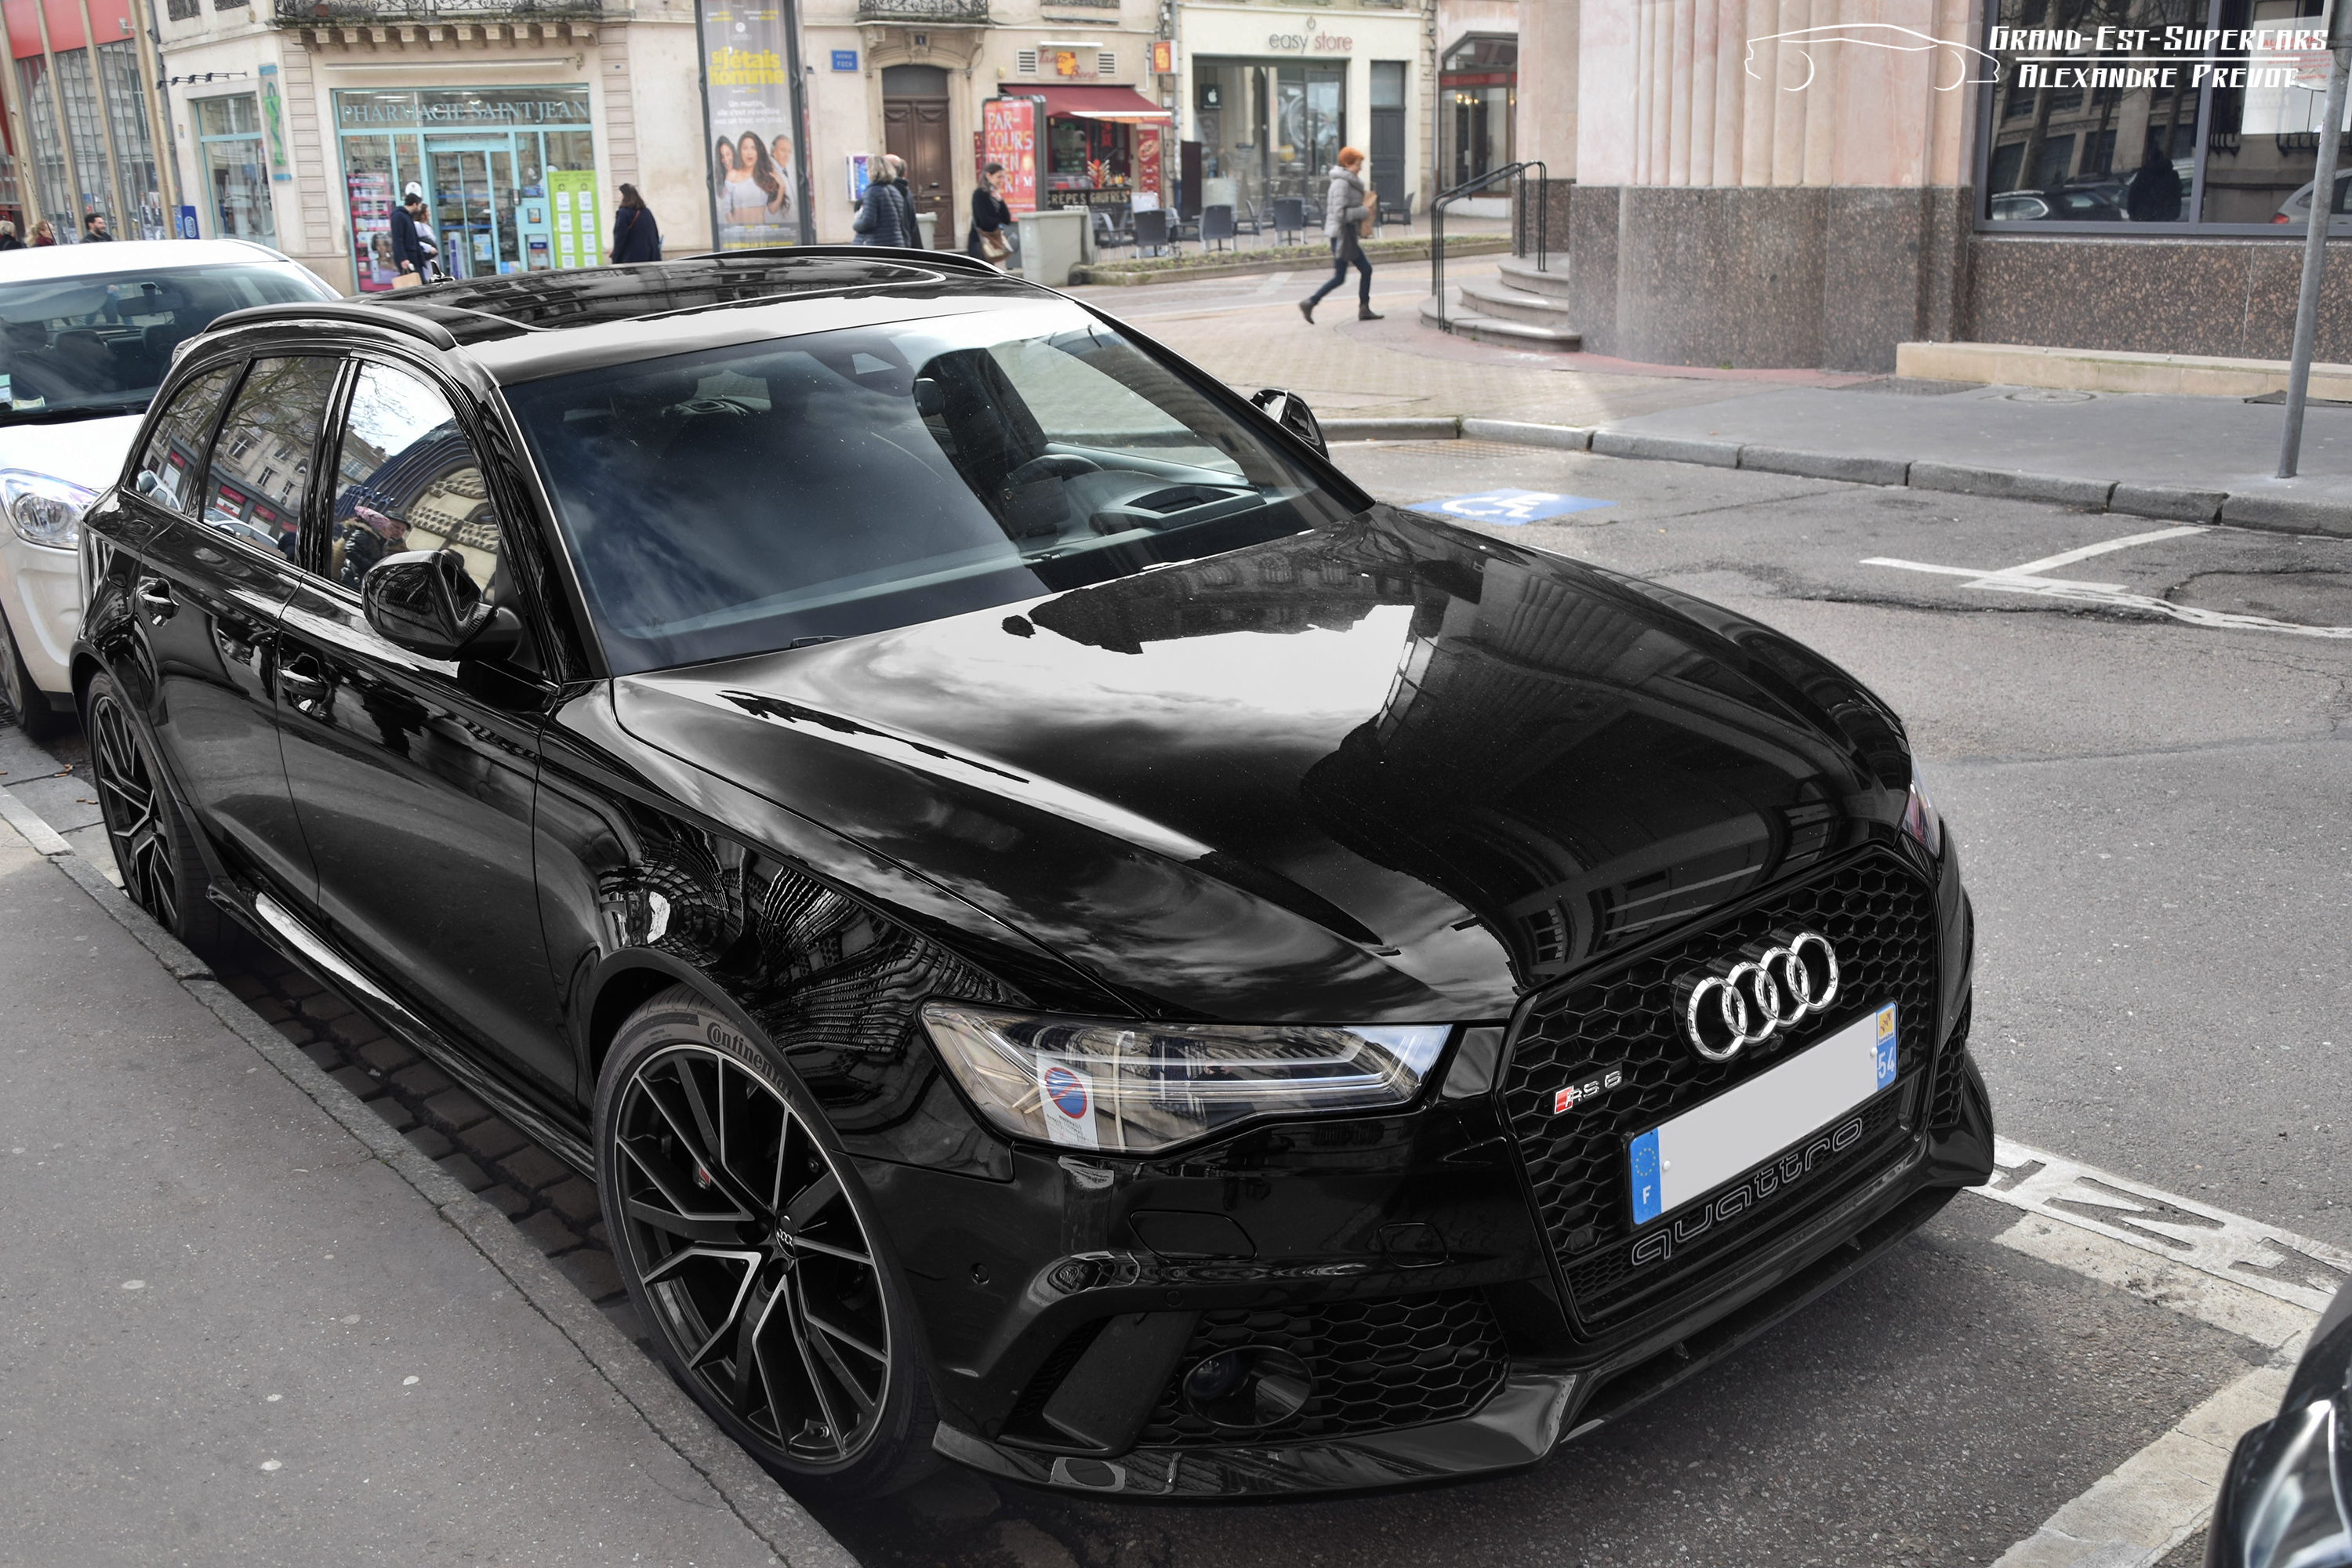 file audi rs6 avant c7 performance 32973748775 jpg wikimedia commons. Black Bedroom Furniture Sets. Home Design Ideas